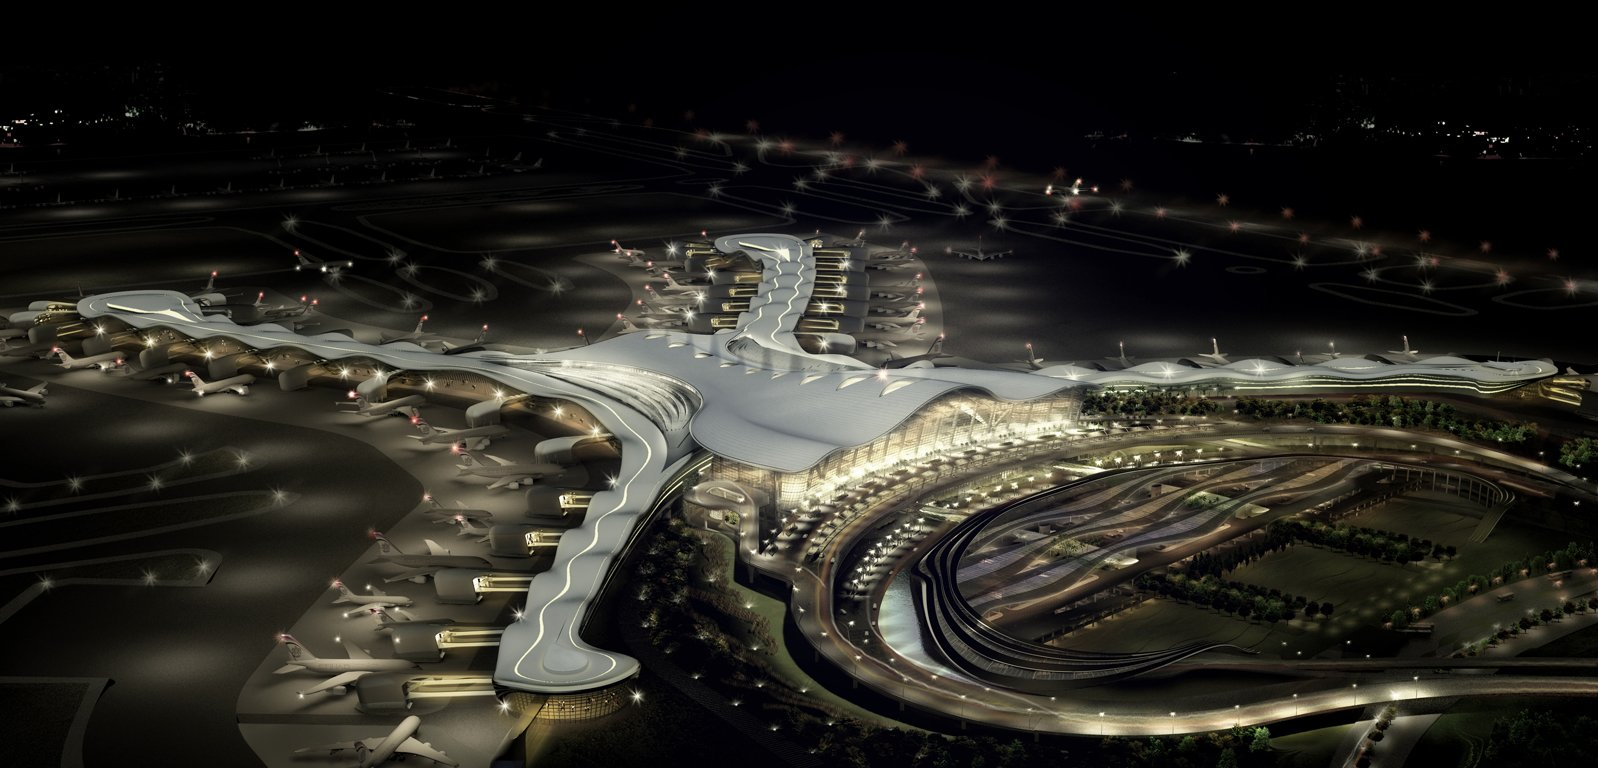 Abu dhabi airfield lighting systems contract airport for International decor company abu dhabi